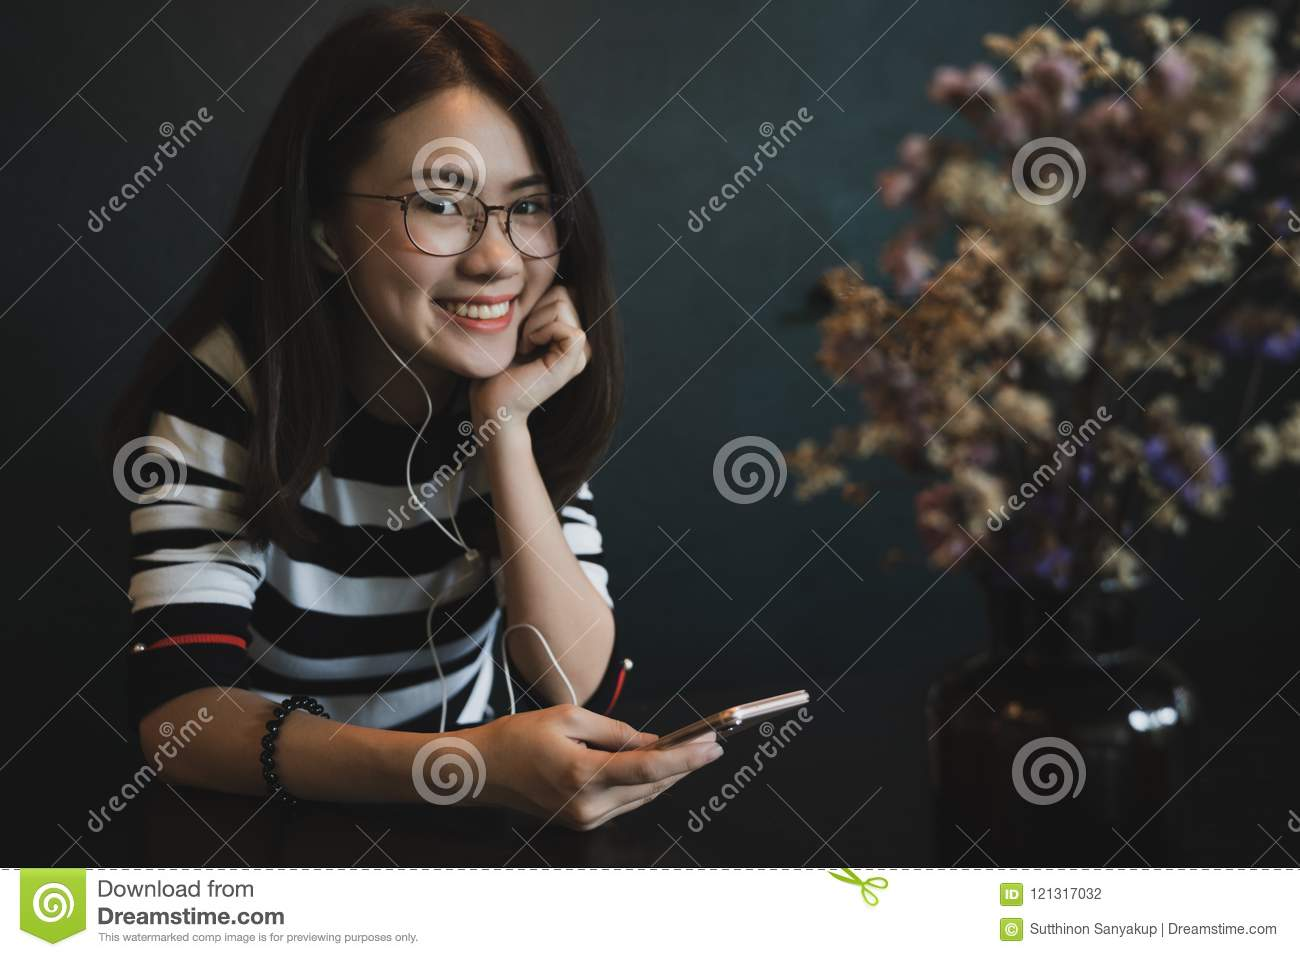 Young beautiful woman with smart phone, Cheerful young woman using smartphone with headphones over black background